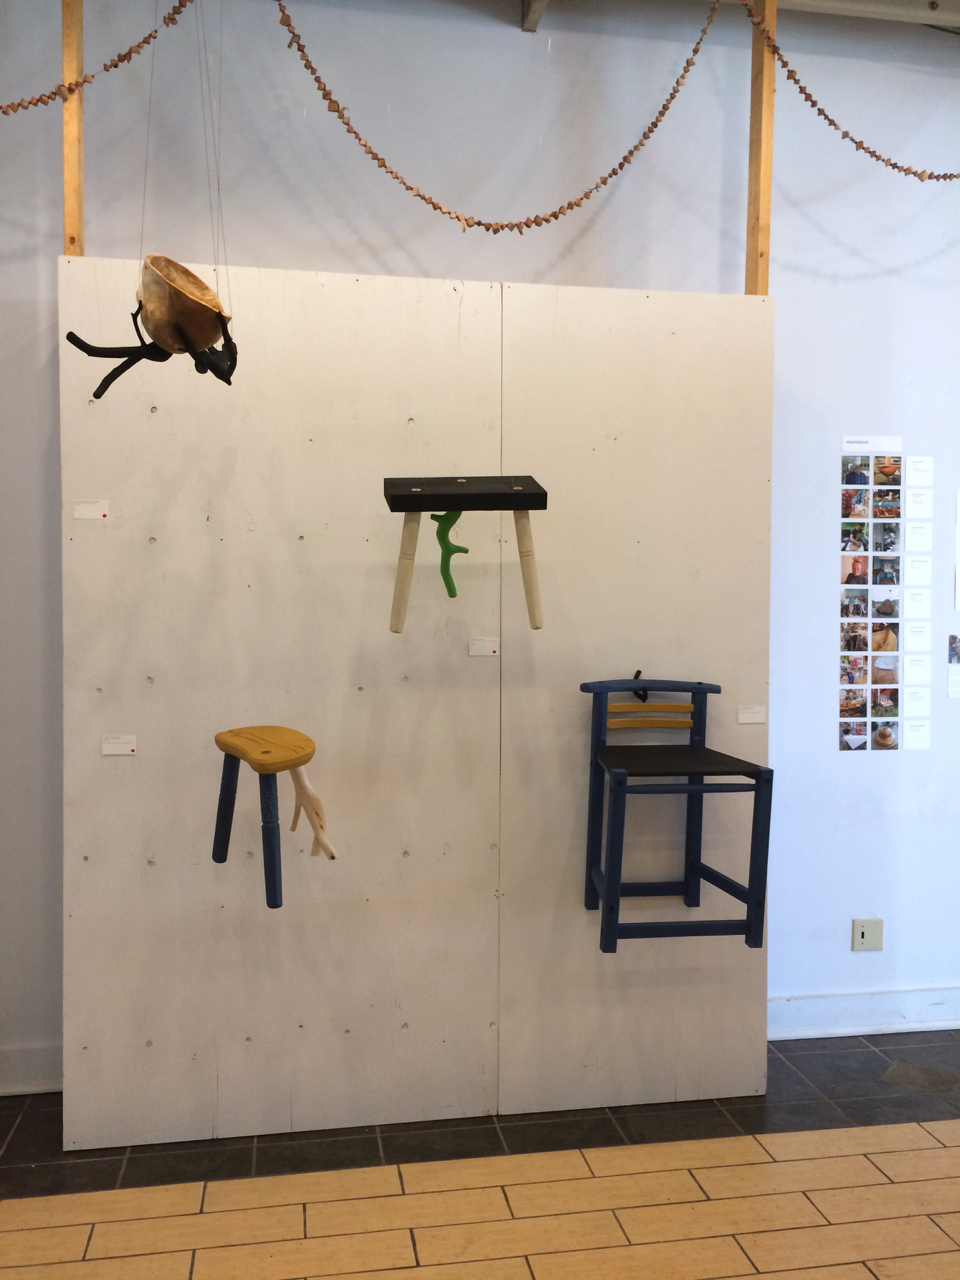 Hanging Burl, Stools & Chair